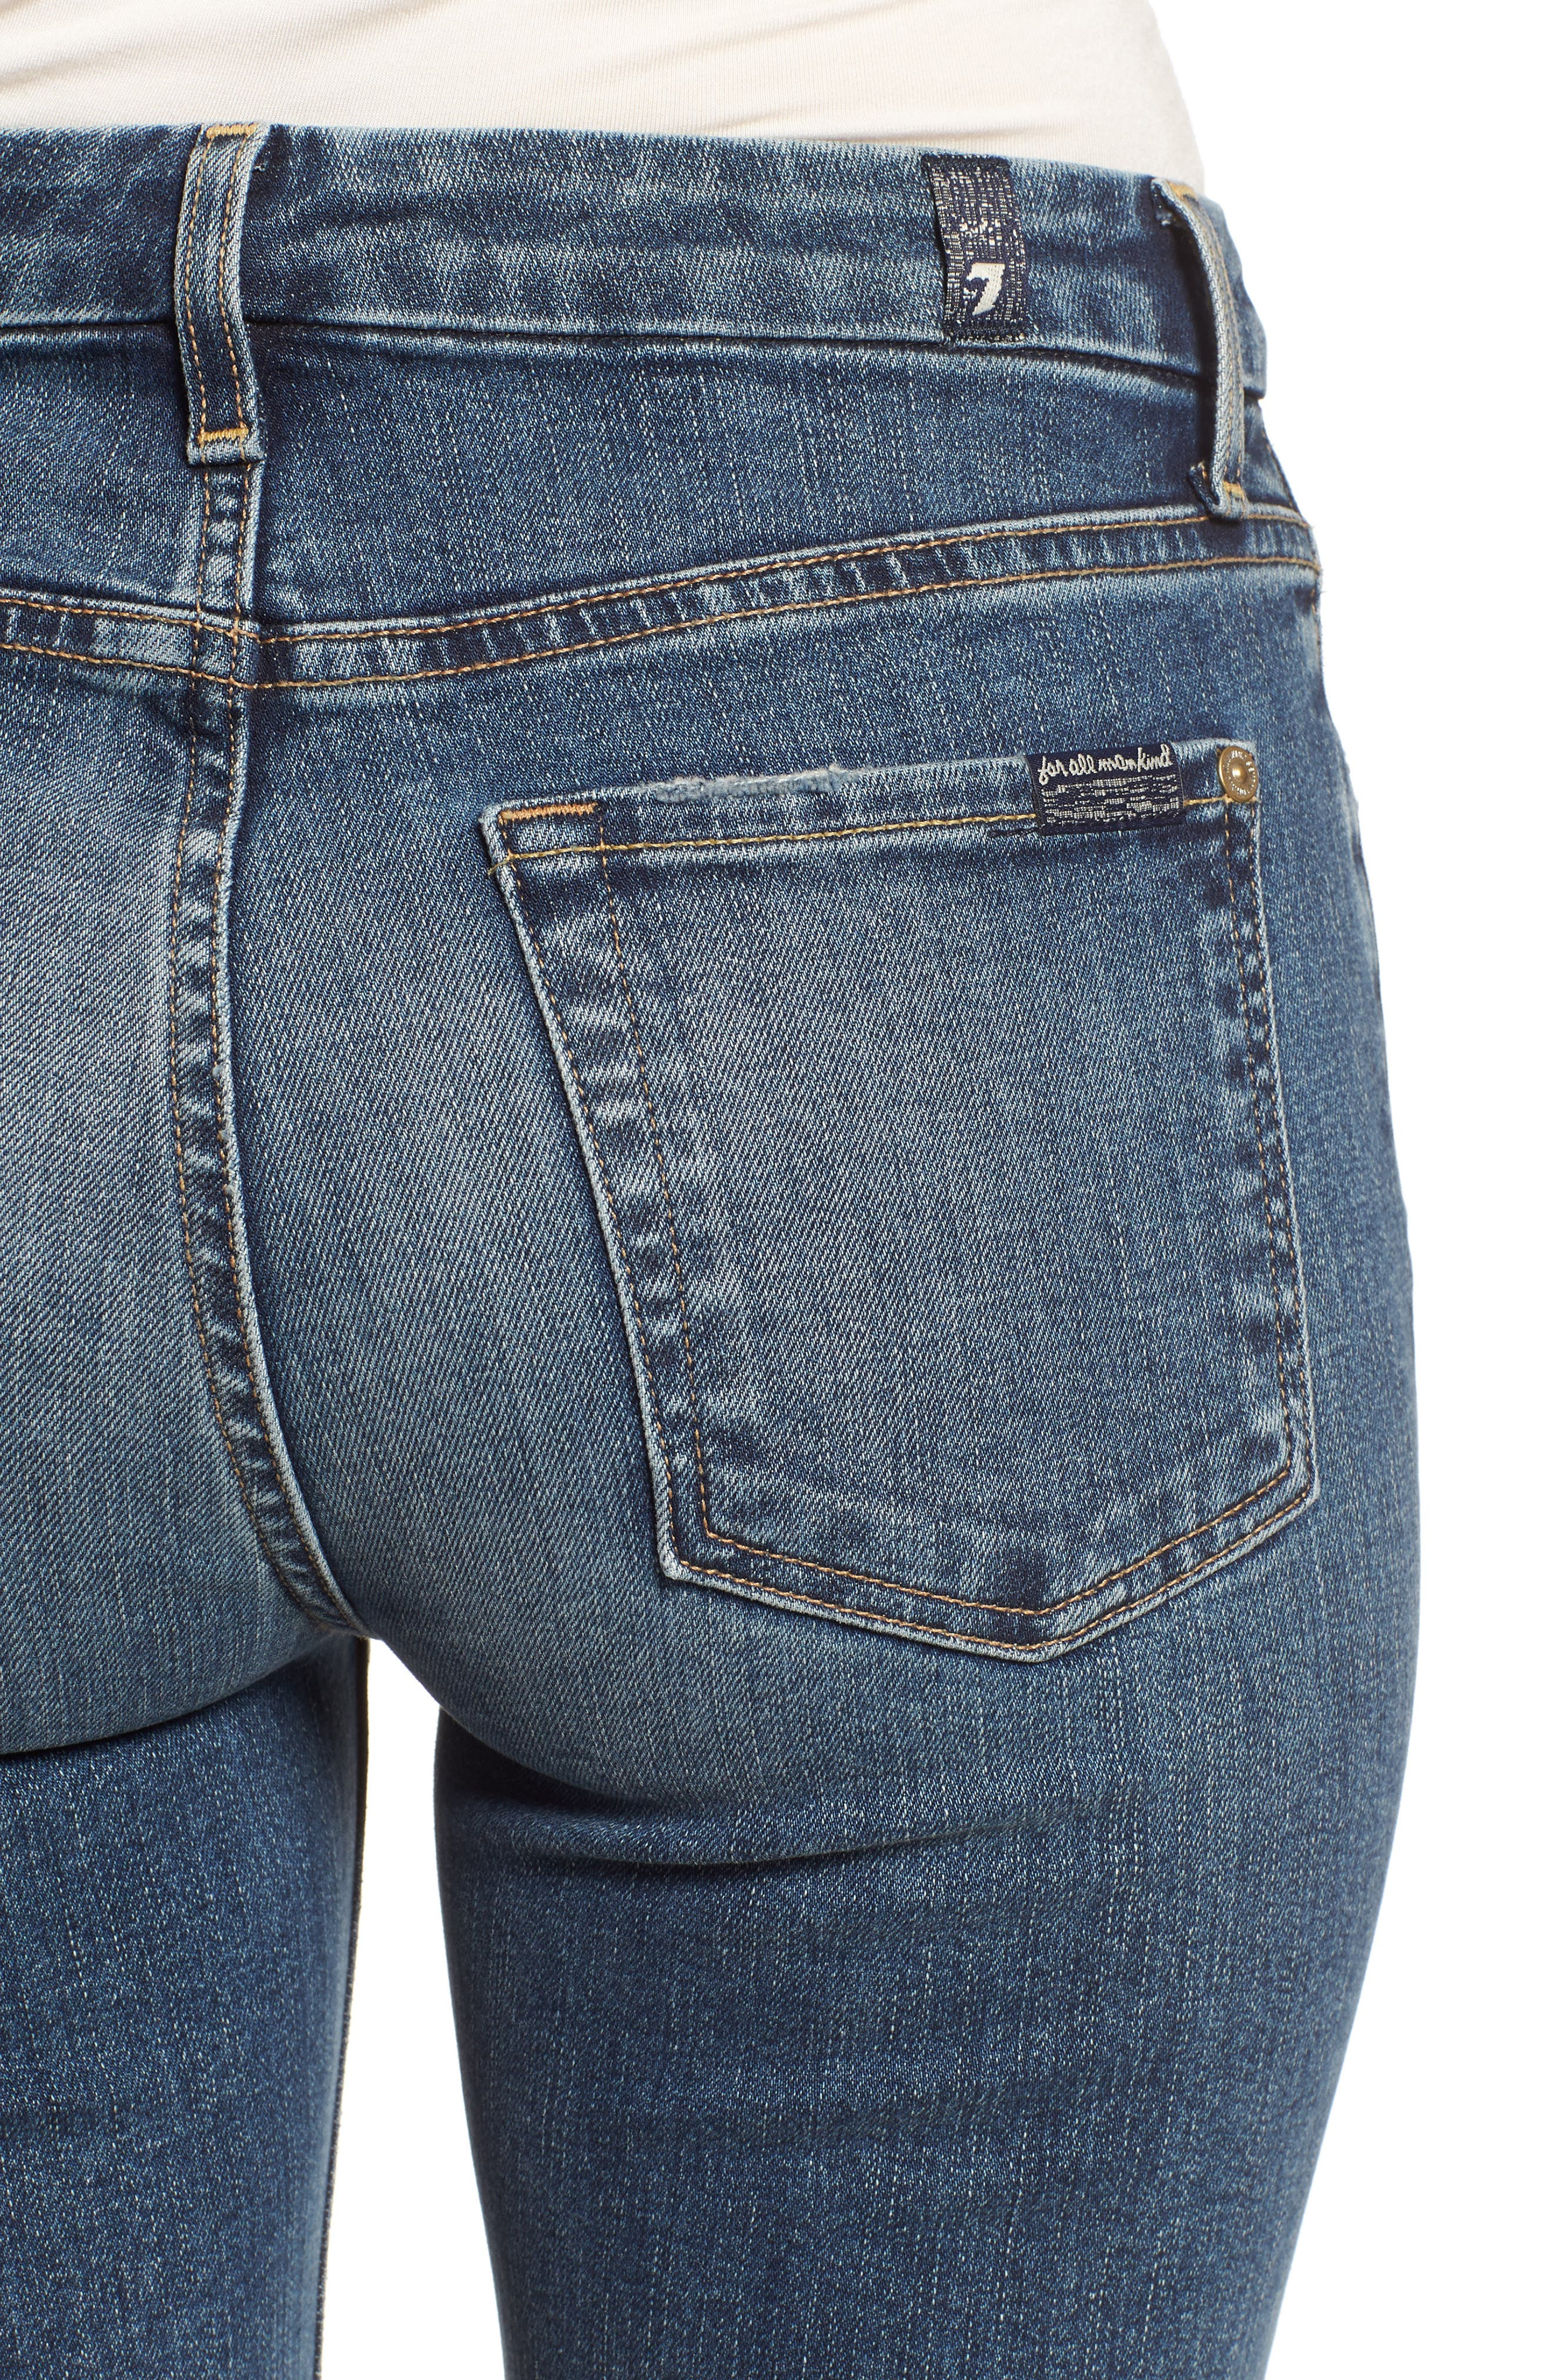 7 FOR ALL MANKIND<SUP>®</SUP>, The High Waist Ankle Skinny Jeans, Alternate thumbnail 5, color, 400